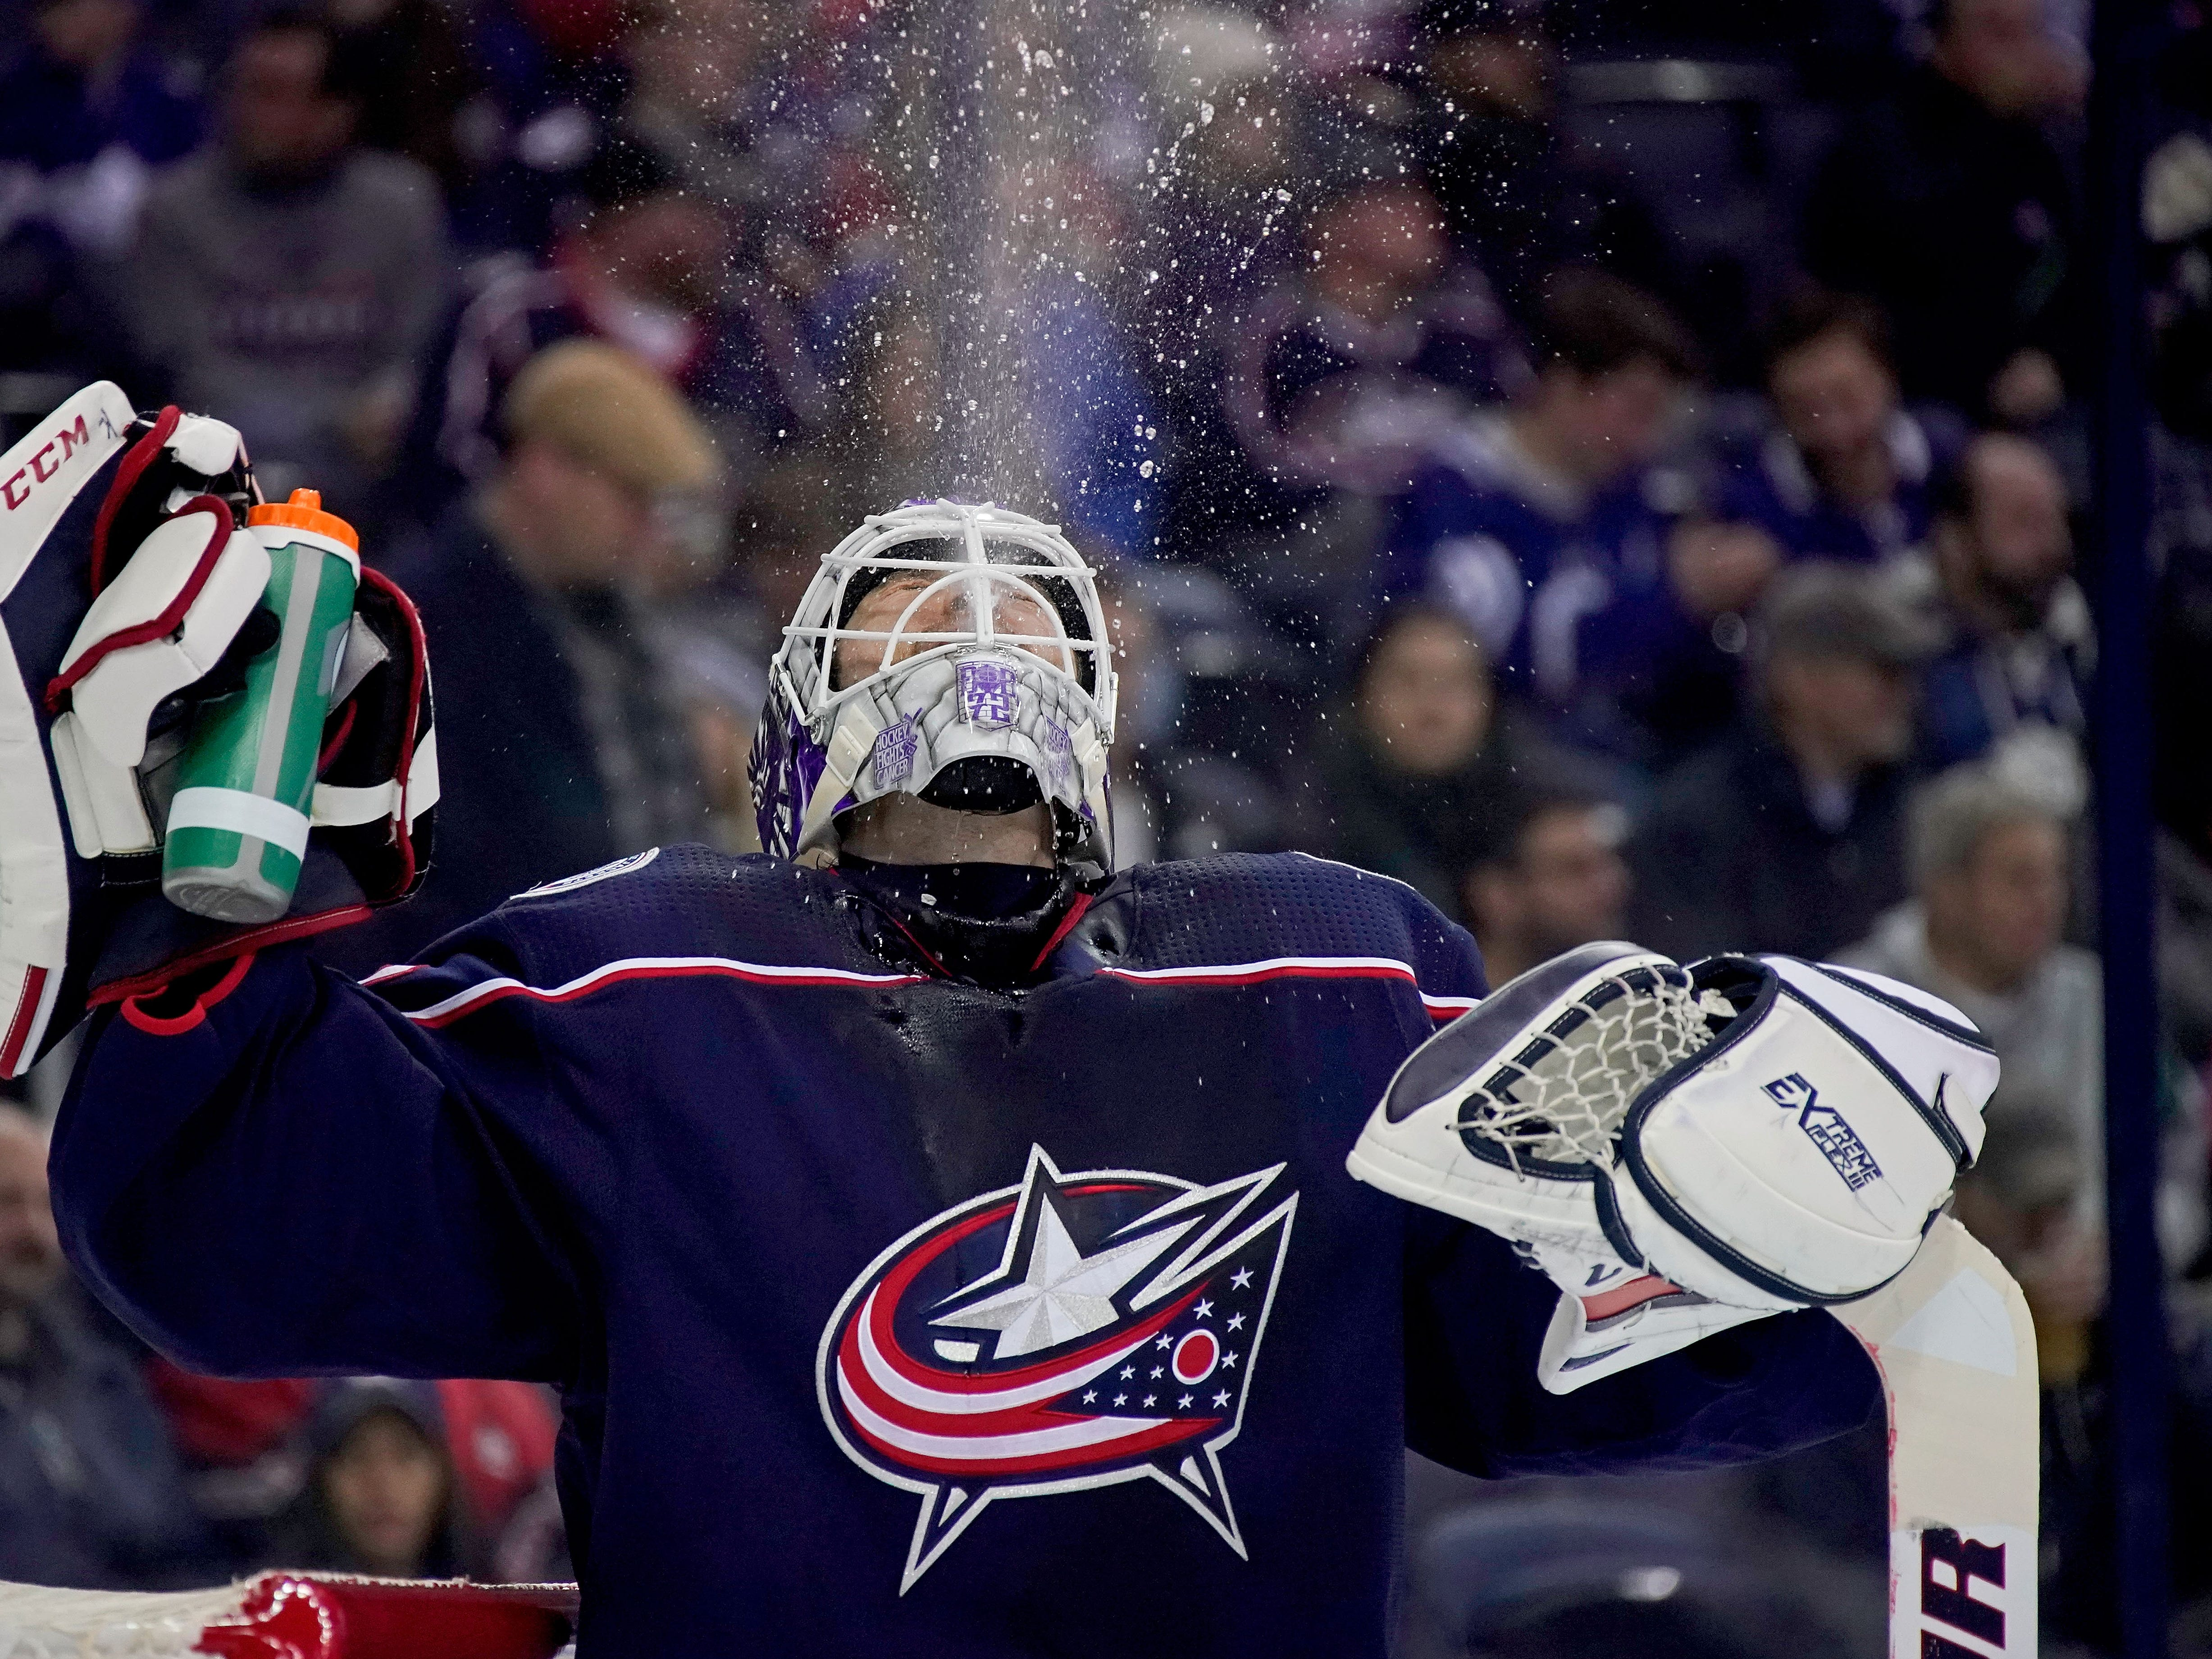 5. Sergei Bobrovsky, G, Columbus: Like his buddy Panarin, Bobrovsky isn't re-signing in Columbus. So what do the Jackets do? They're squarely in the playoff hunt and no playoff contender currently needs goaltending.